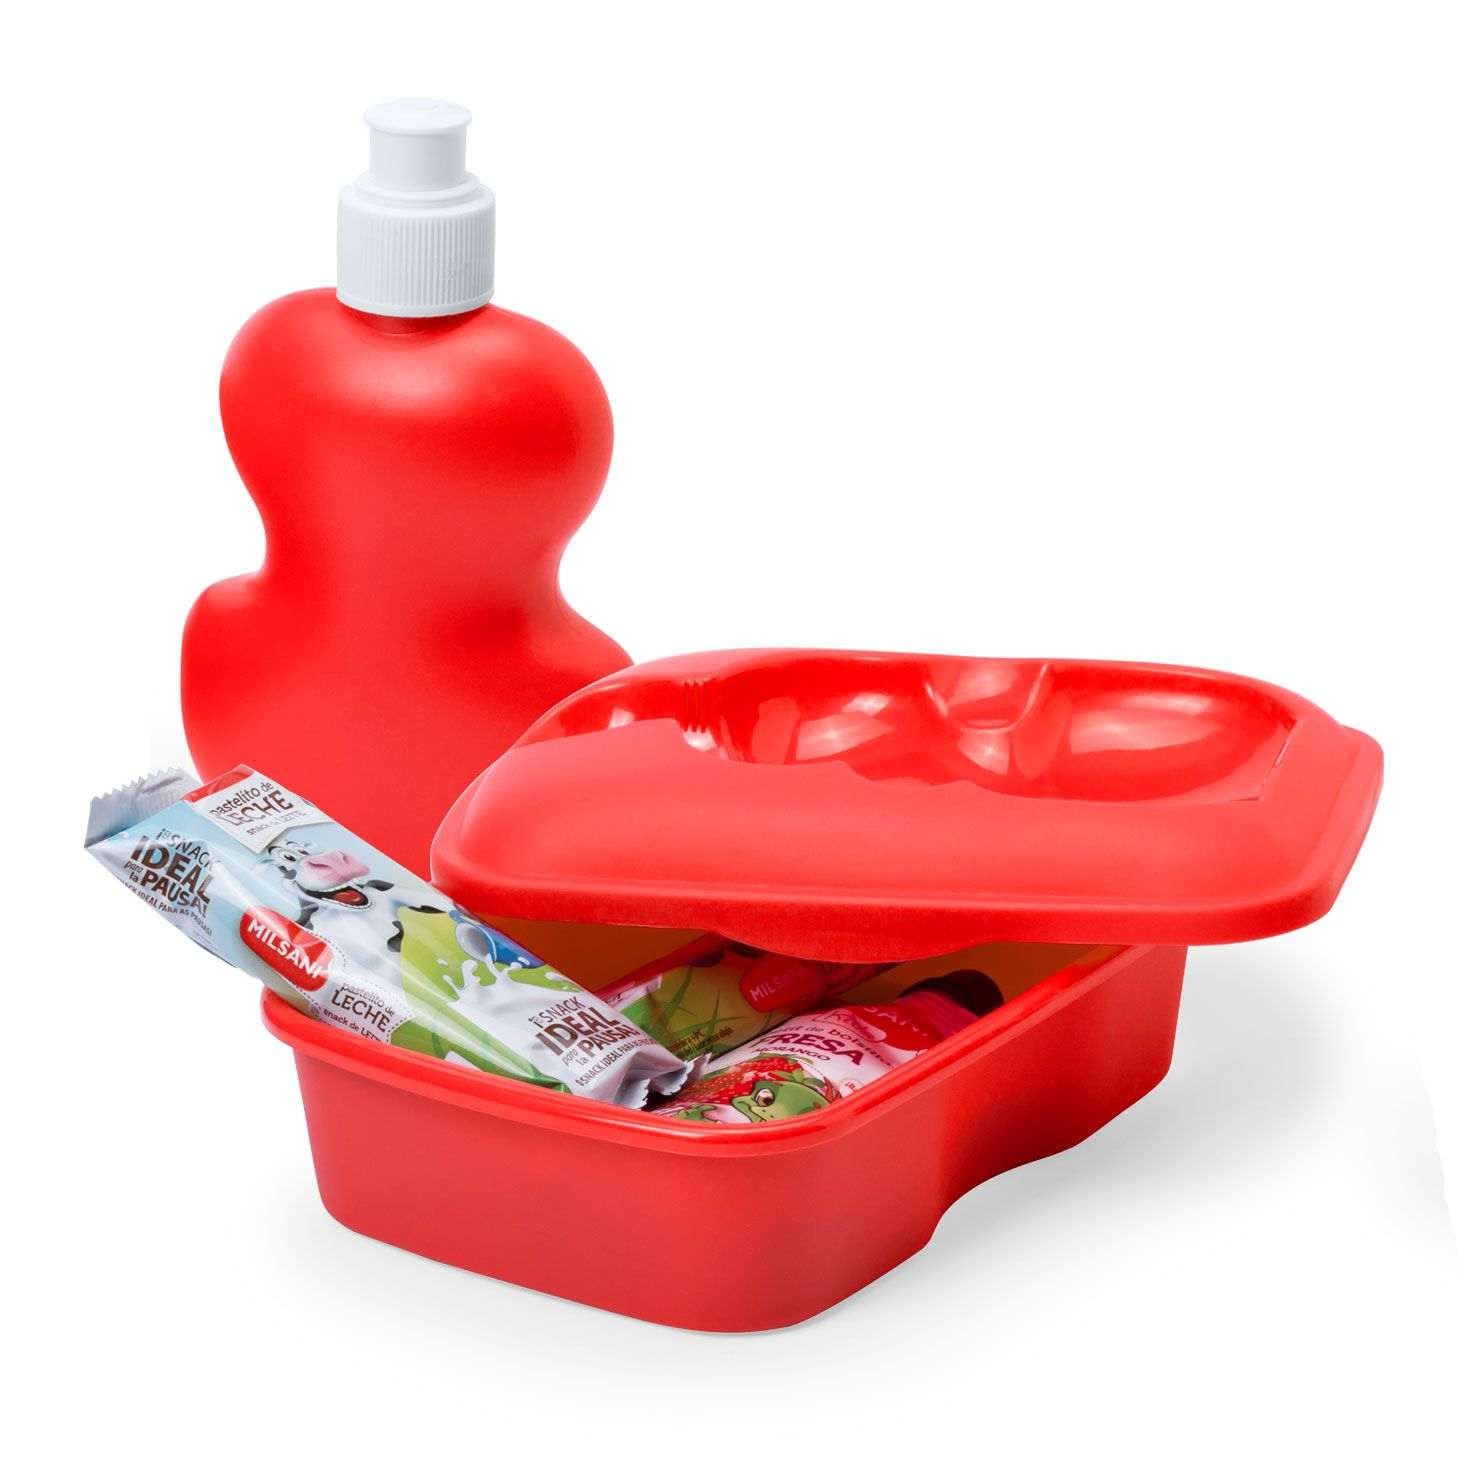 Lunchbox met beker | 300 ml